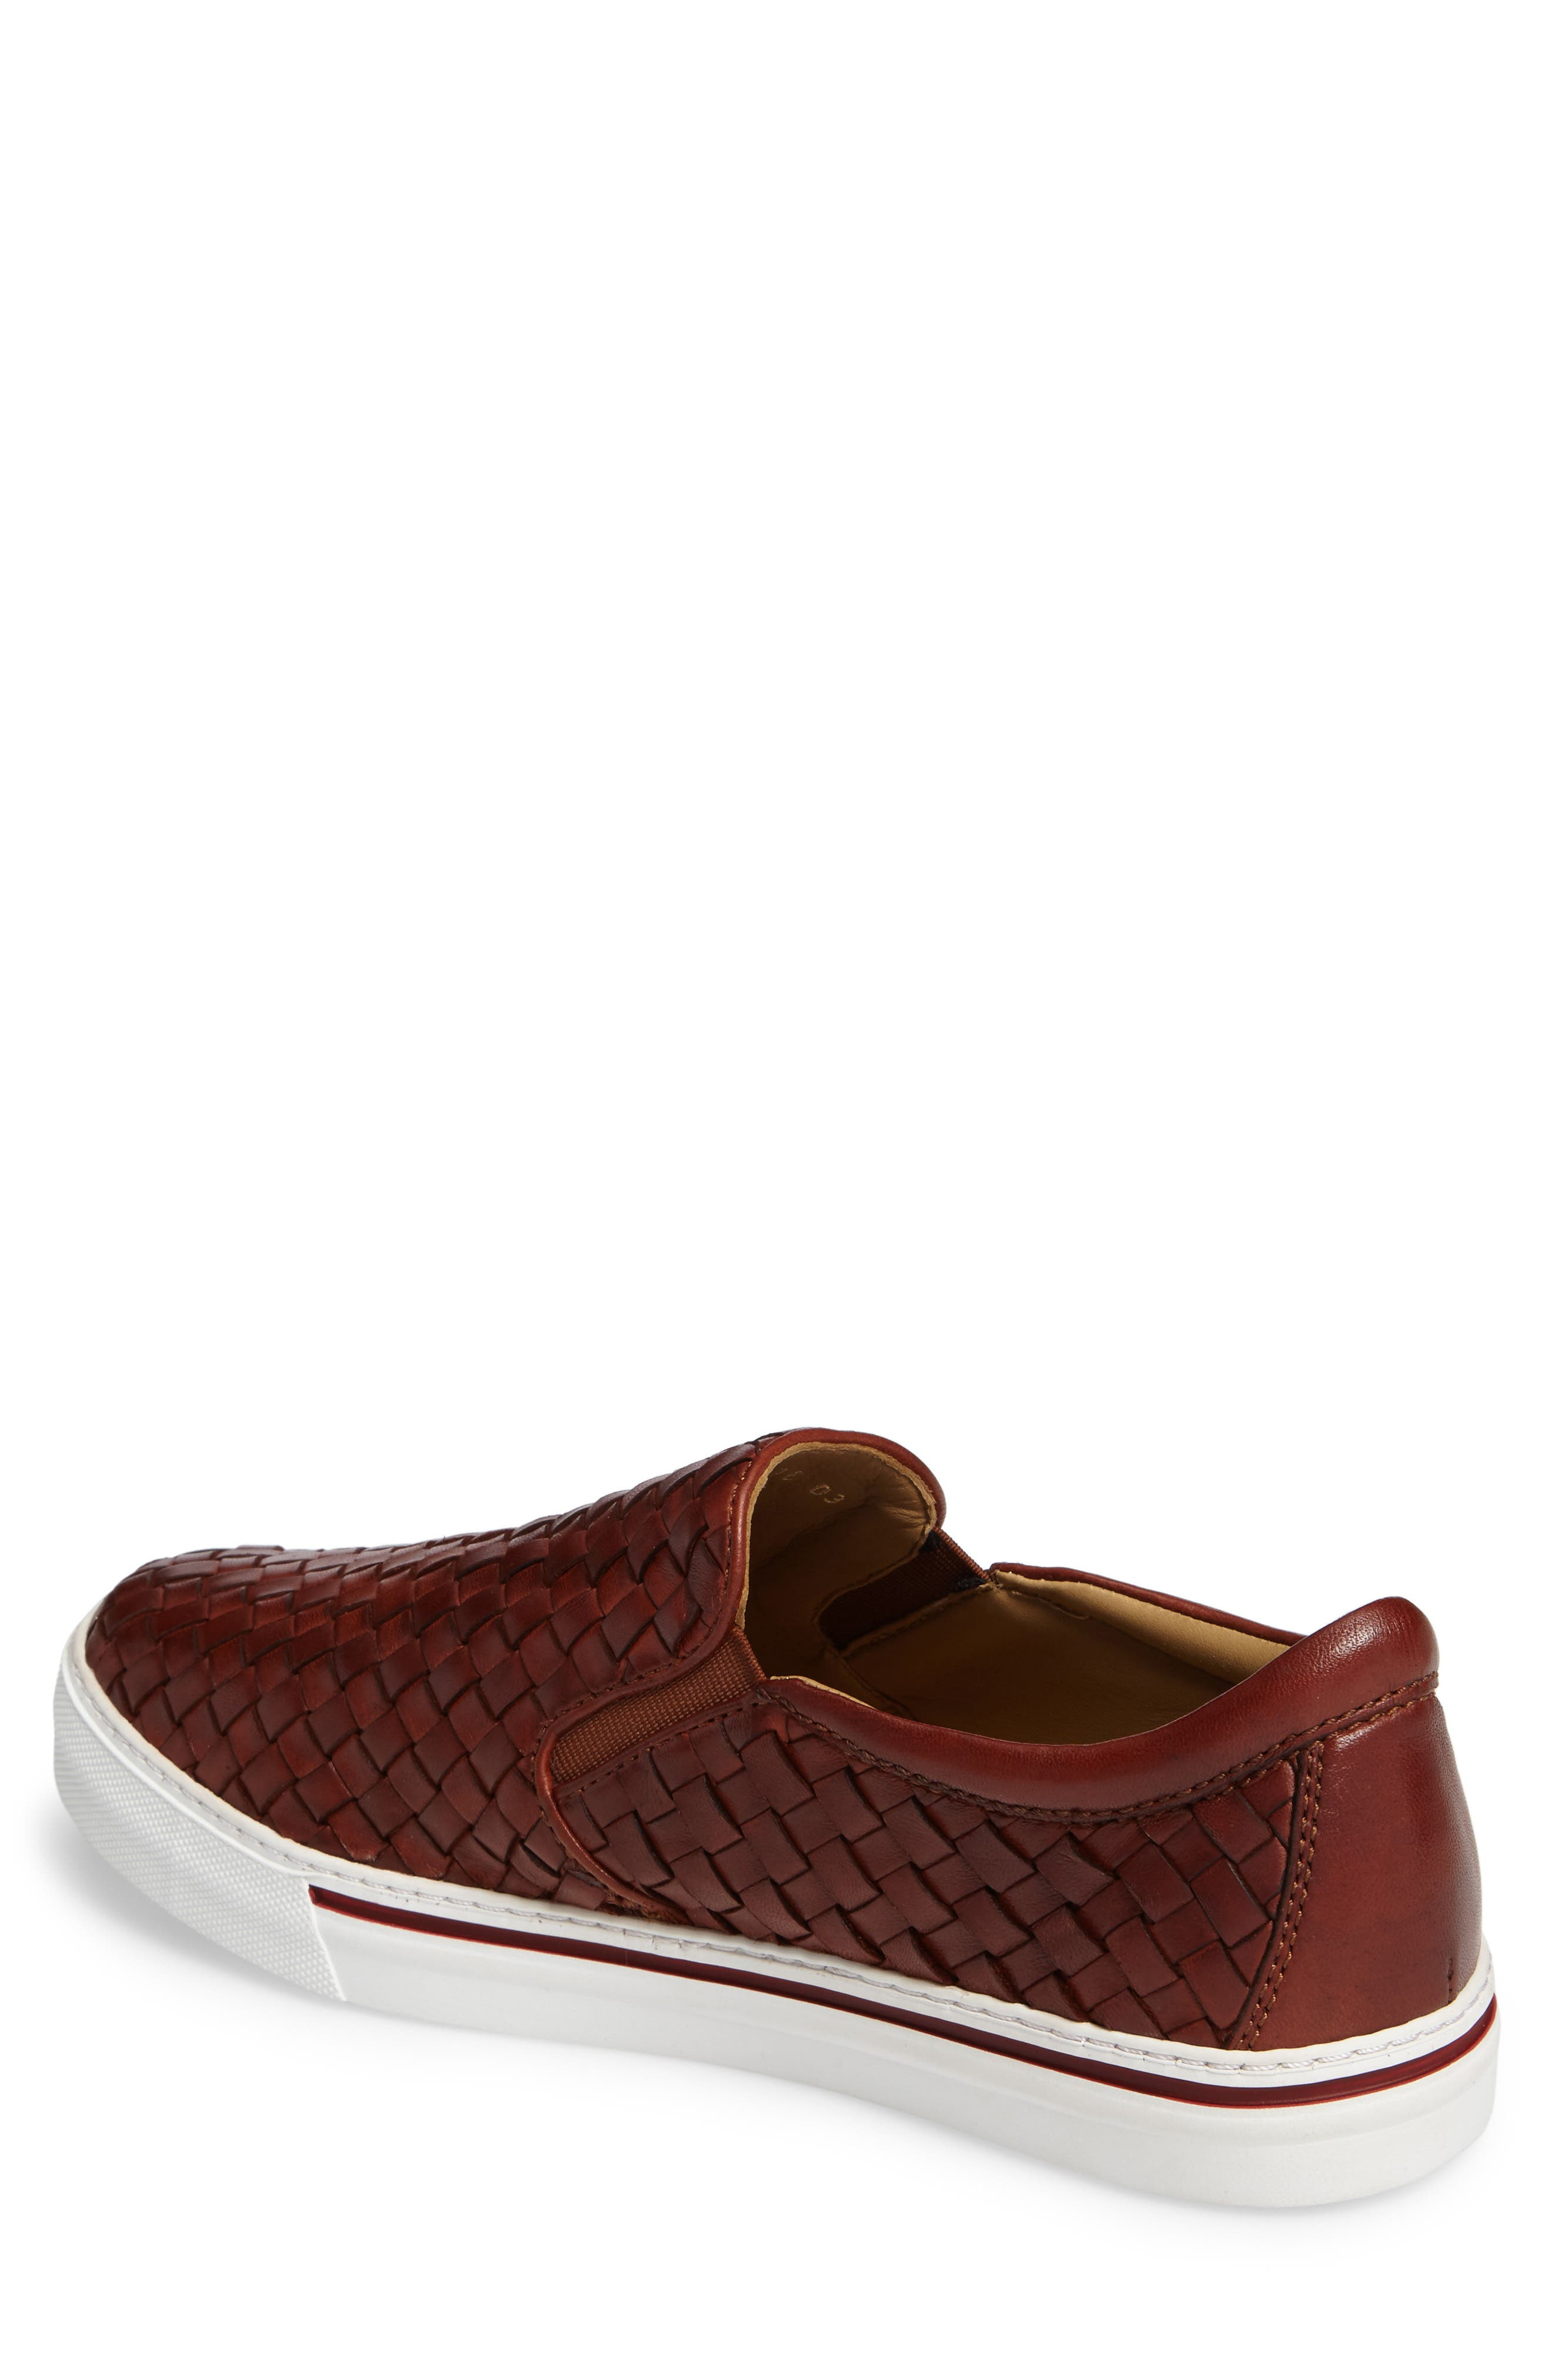 James Slip-On,                             Alternate thumbnail 2, color,                             Dark Luggage Leather